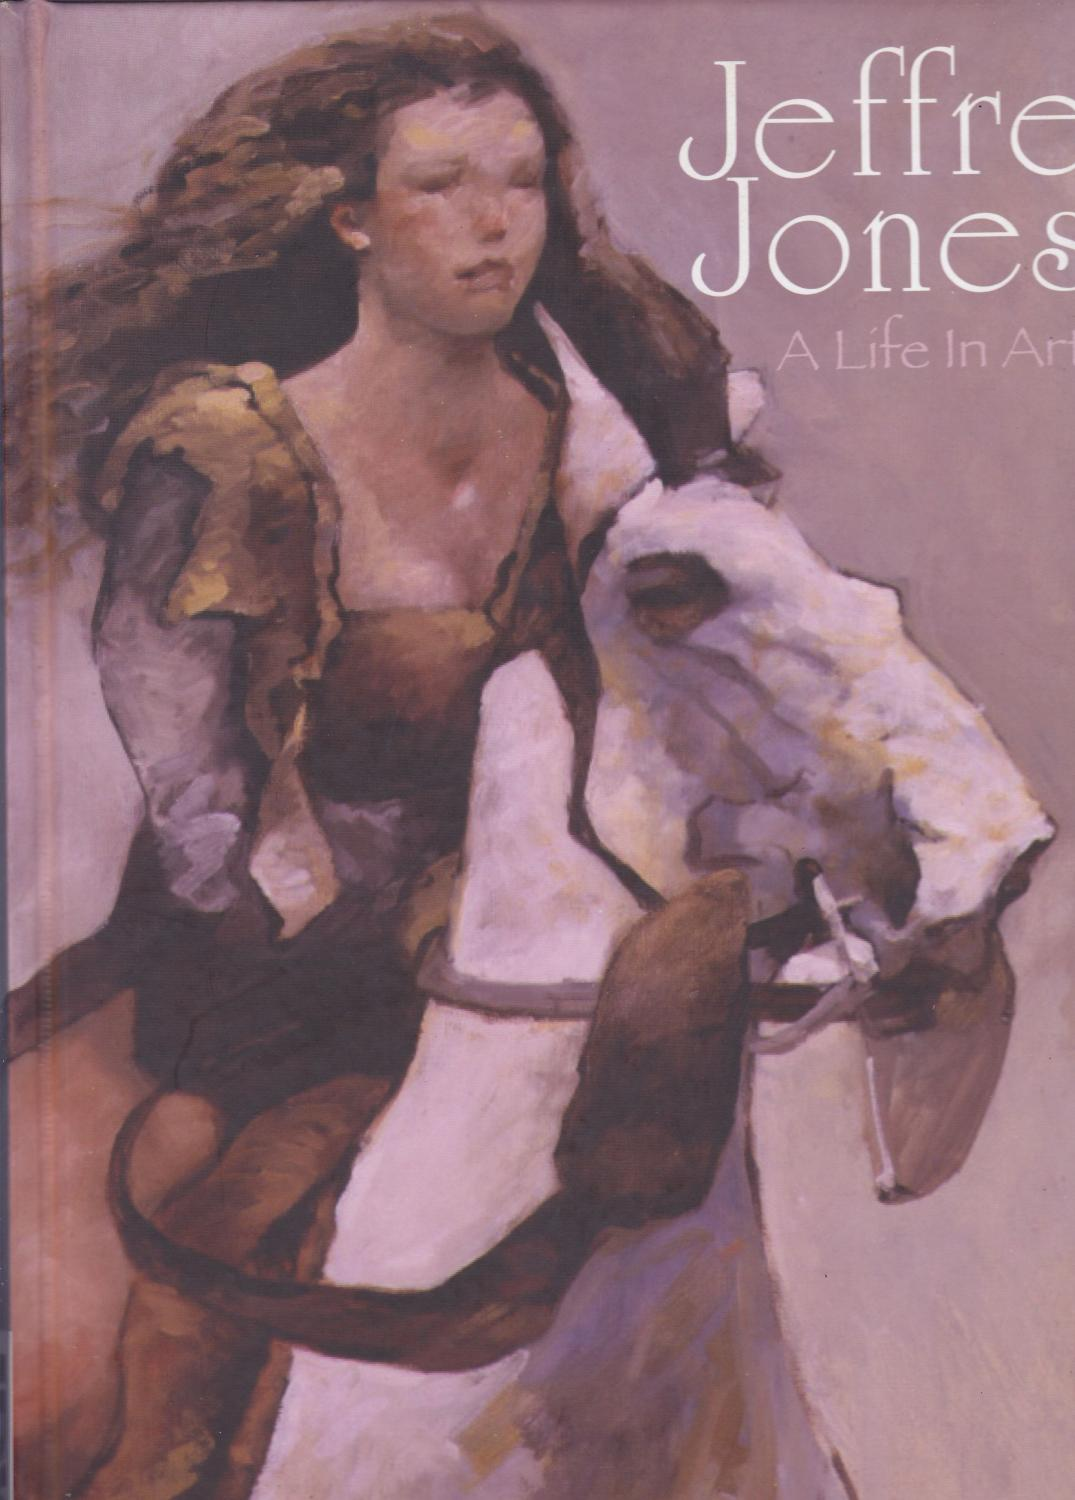 Jeffrey Jones A Life in Art - Jeffrey Jones, Cliff Biggers